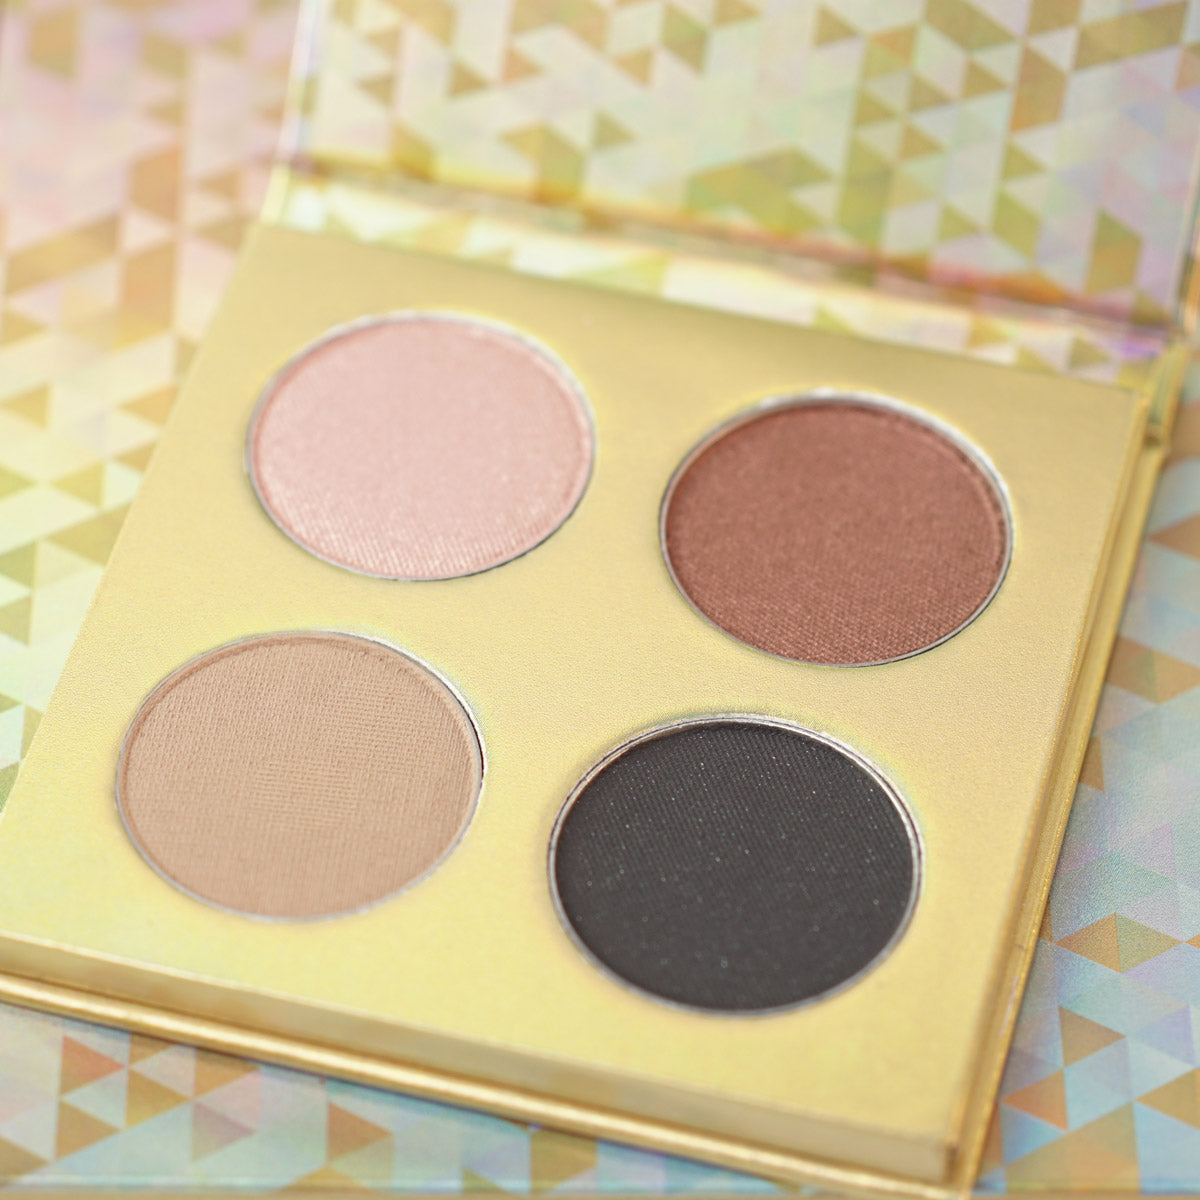 Determination Eyeshadow Palette - 'Stand Up To Cancer'